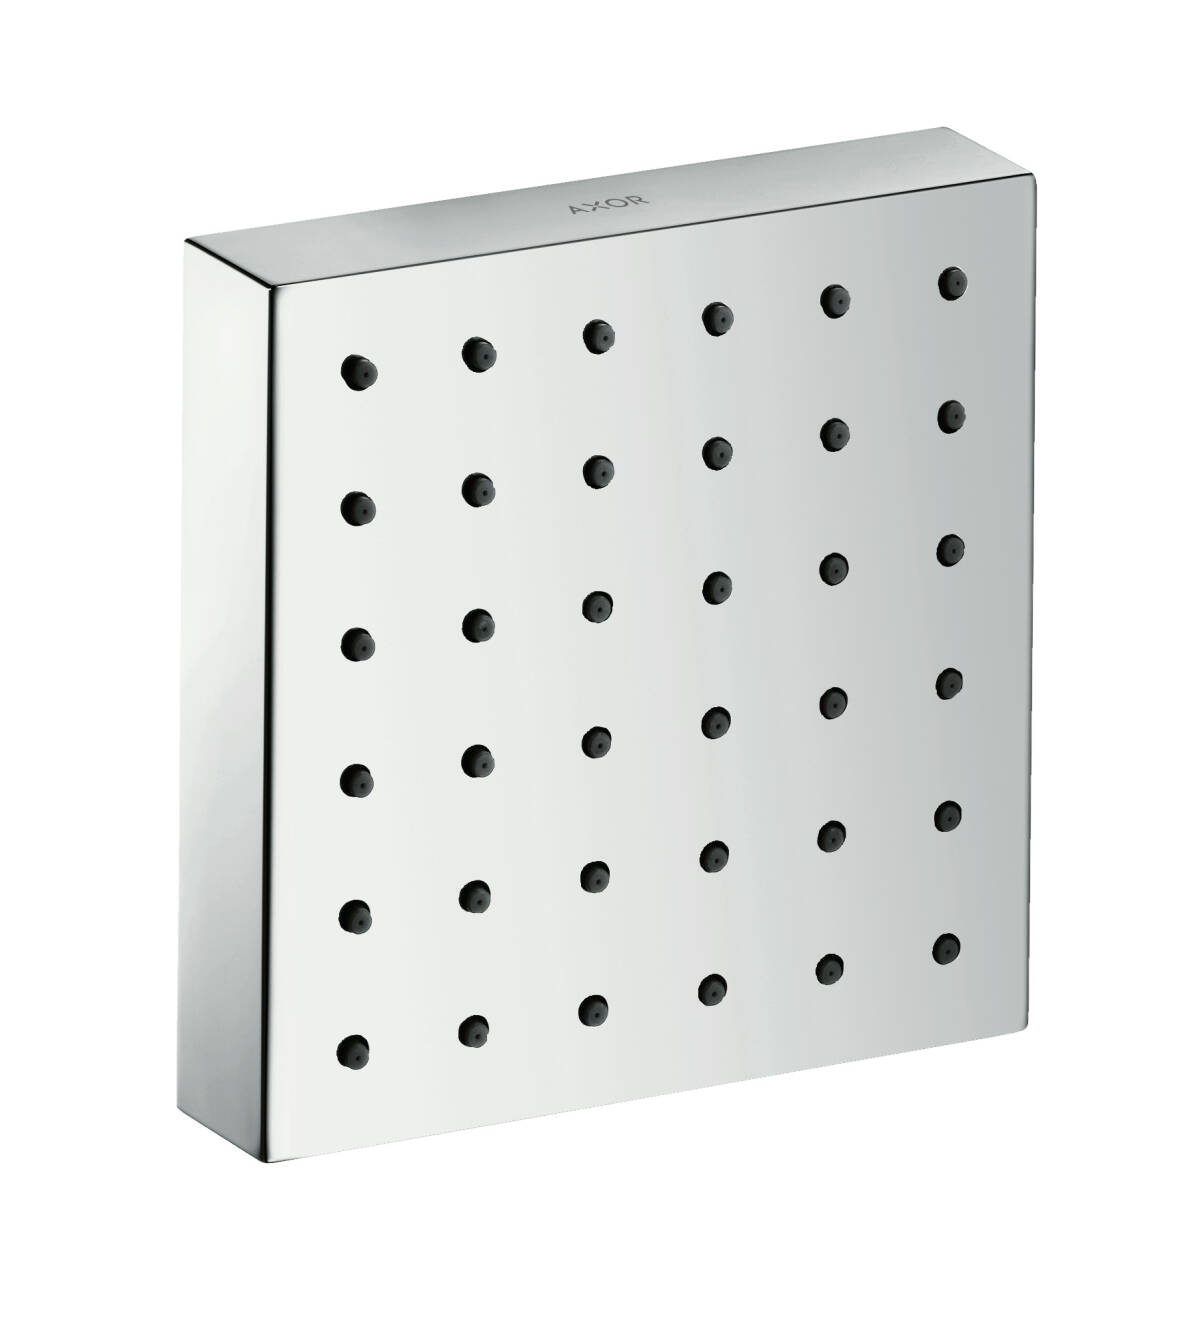 Shower module 120/120 for concealed installation square, Chrome, 28491000